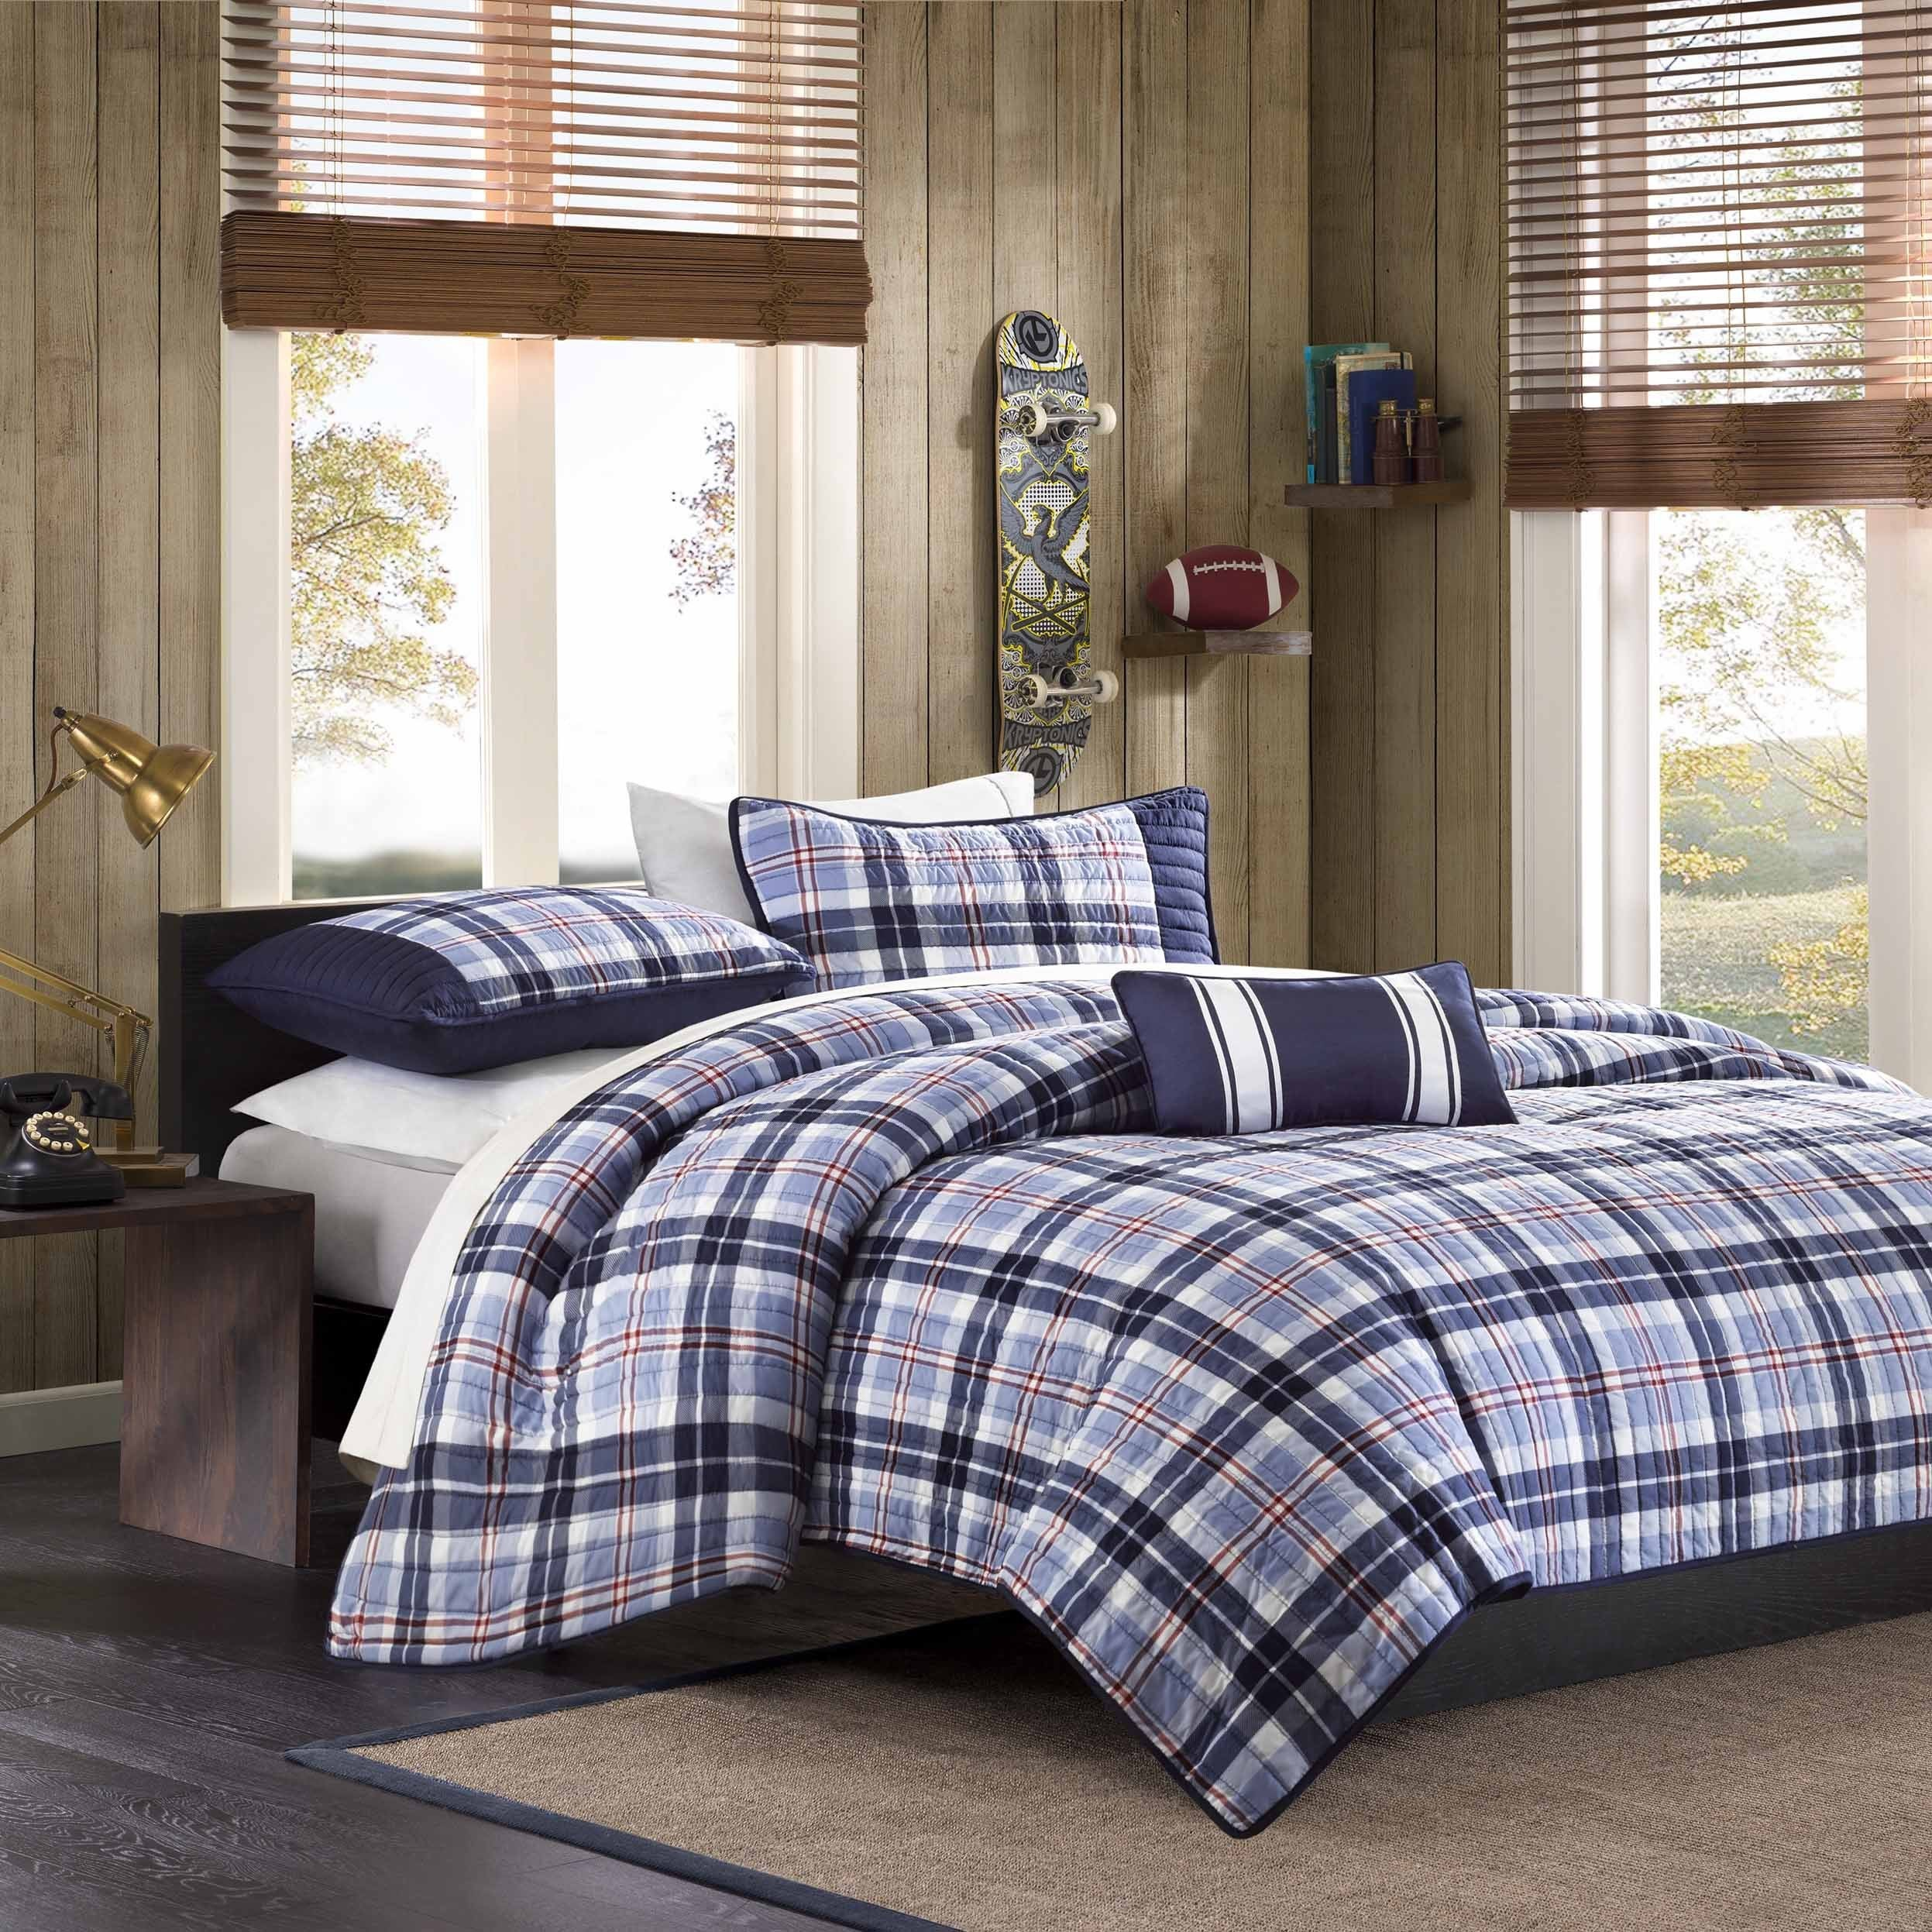 king organic of beautiful cover covers amazon duvet plaid double flannel red